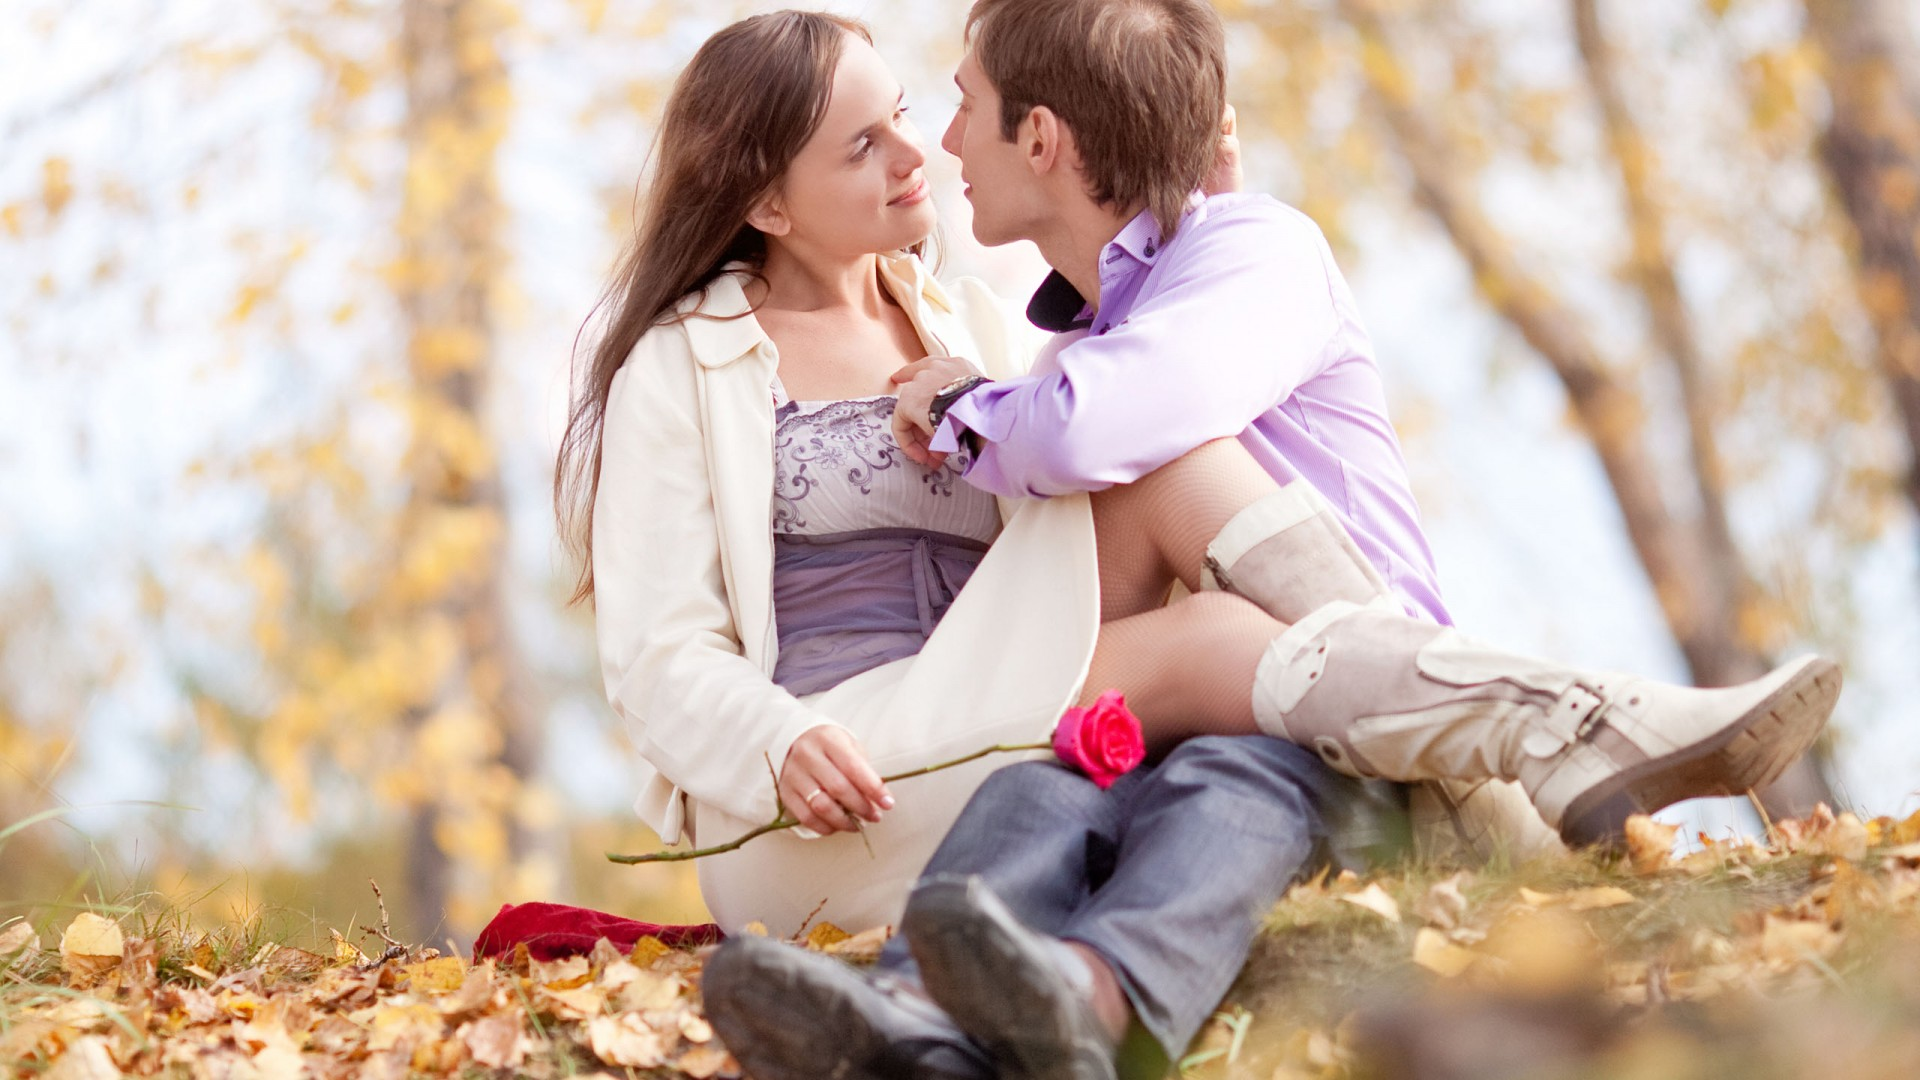 HD Love Kiss Wallpapers Free Download